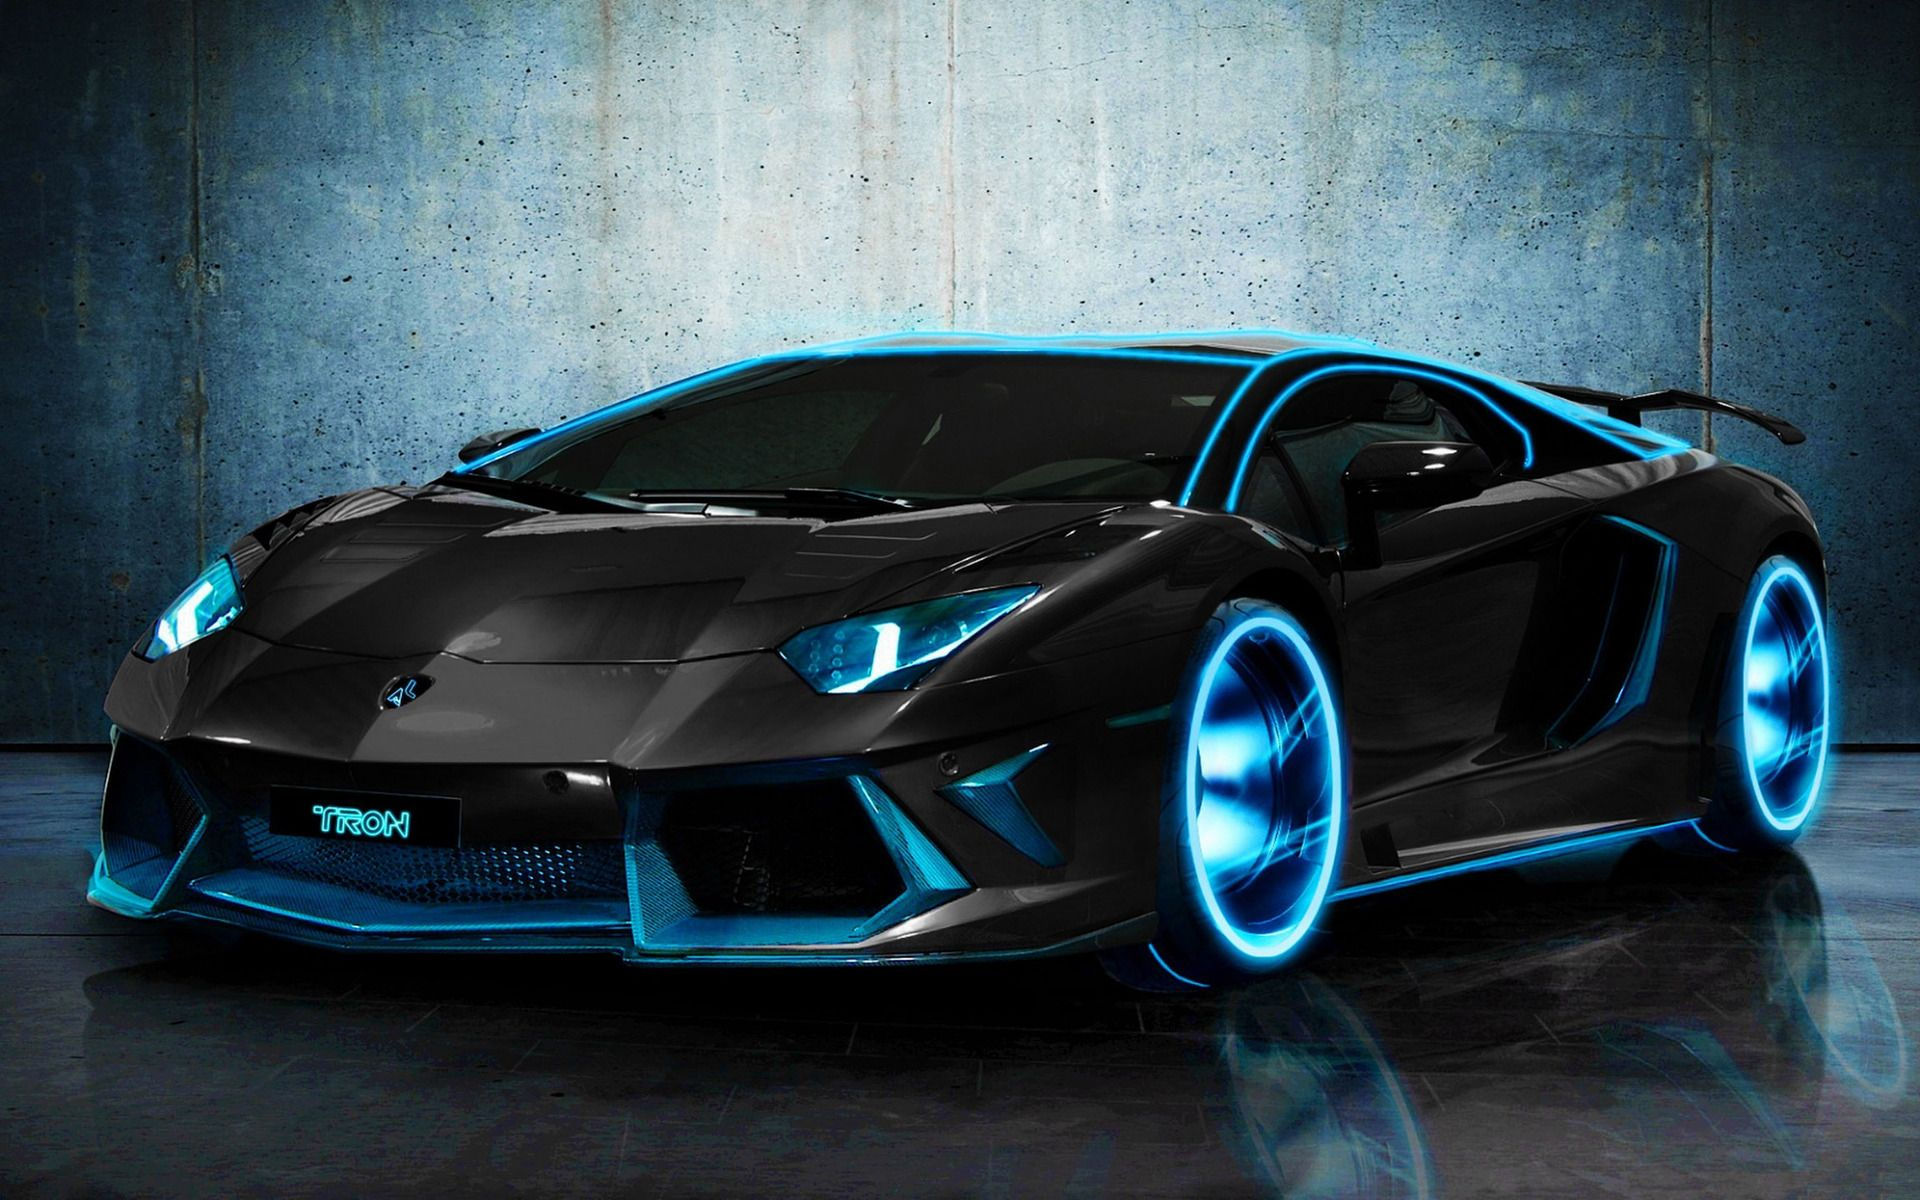 Black Lambo Wallpapers Top Free Black Lambo Backgrounds